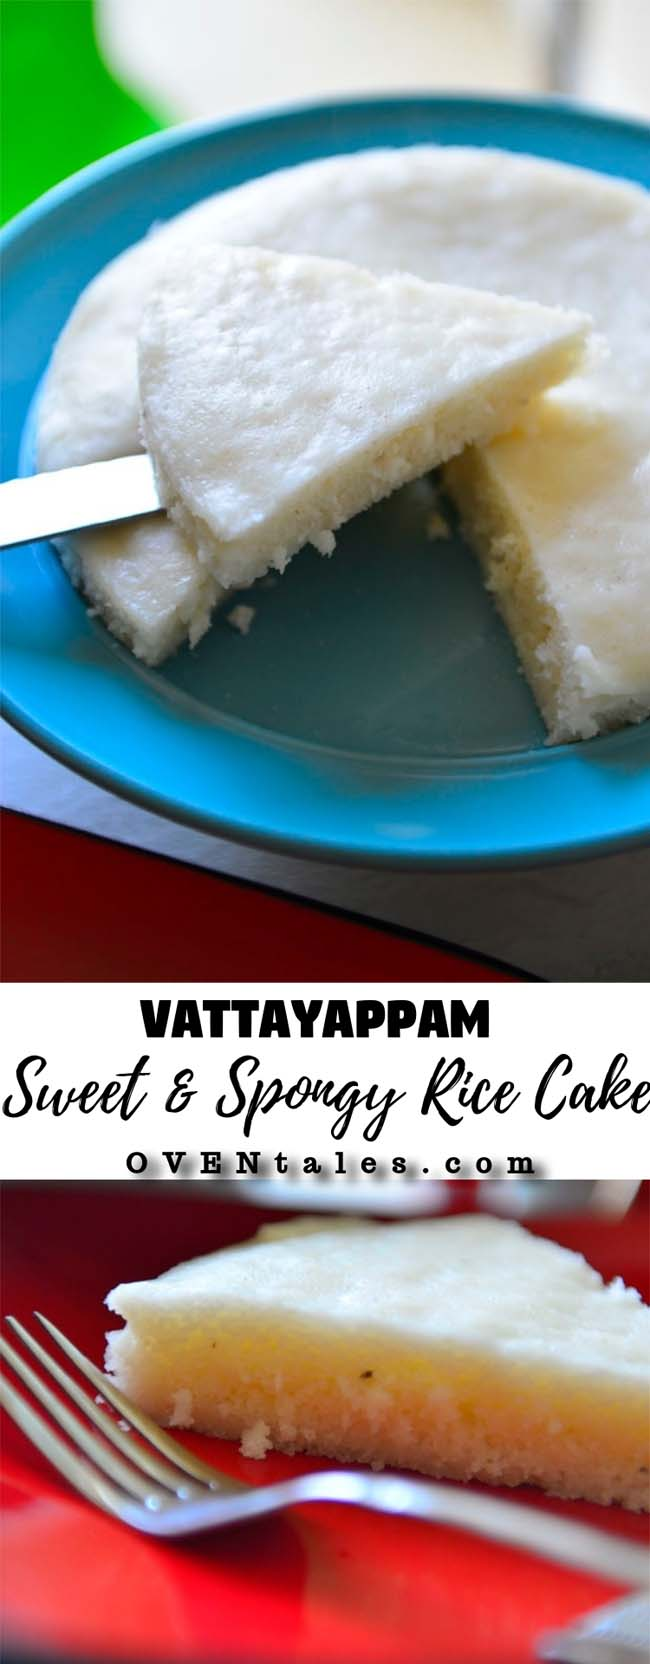 Vattayappm - the soft and spongy sweet Rice Cake From Kerala